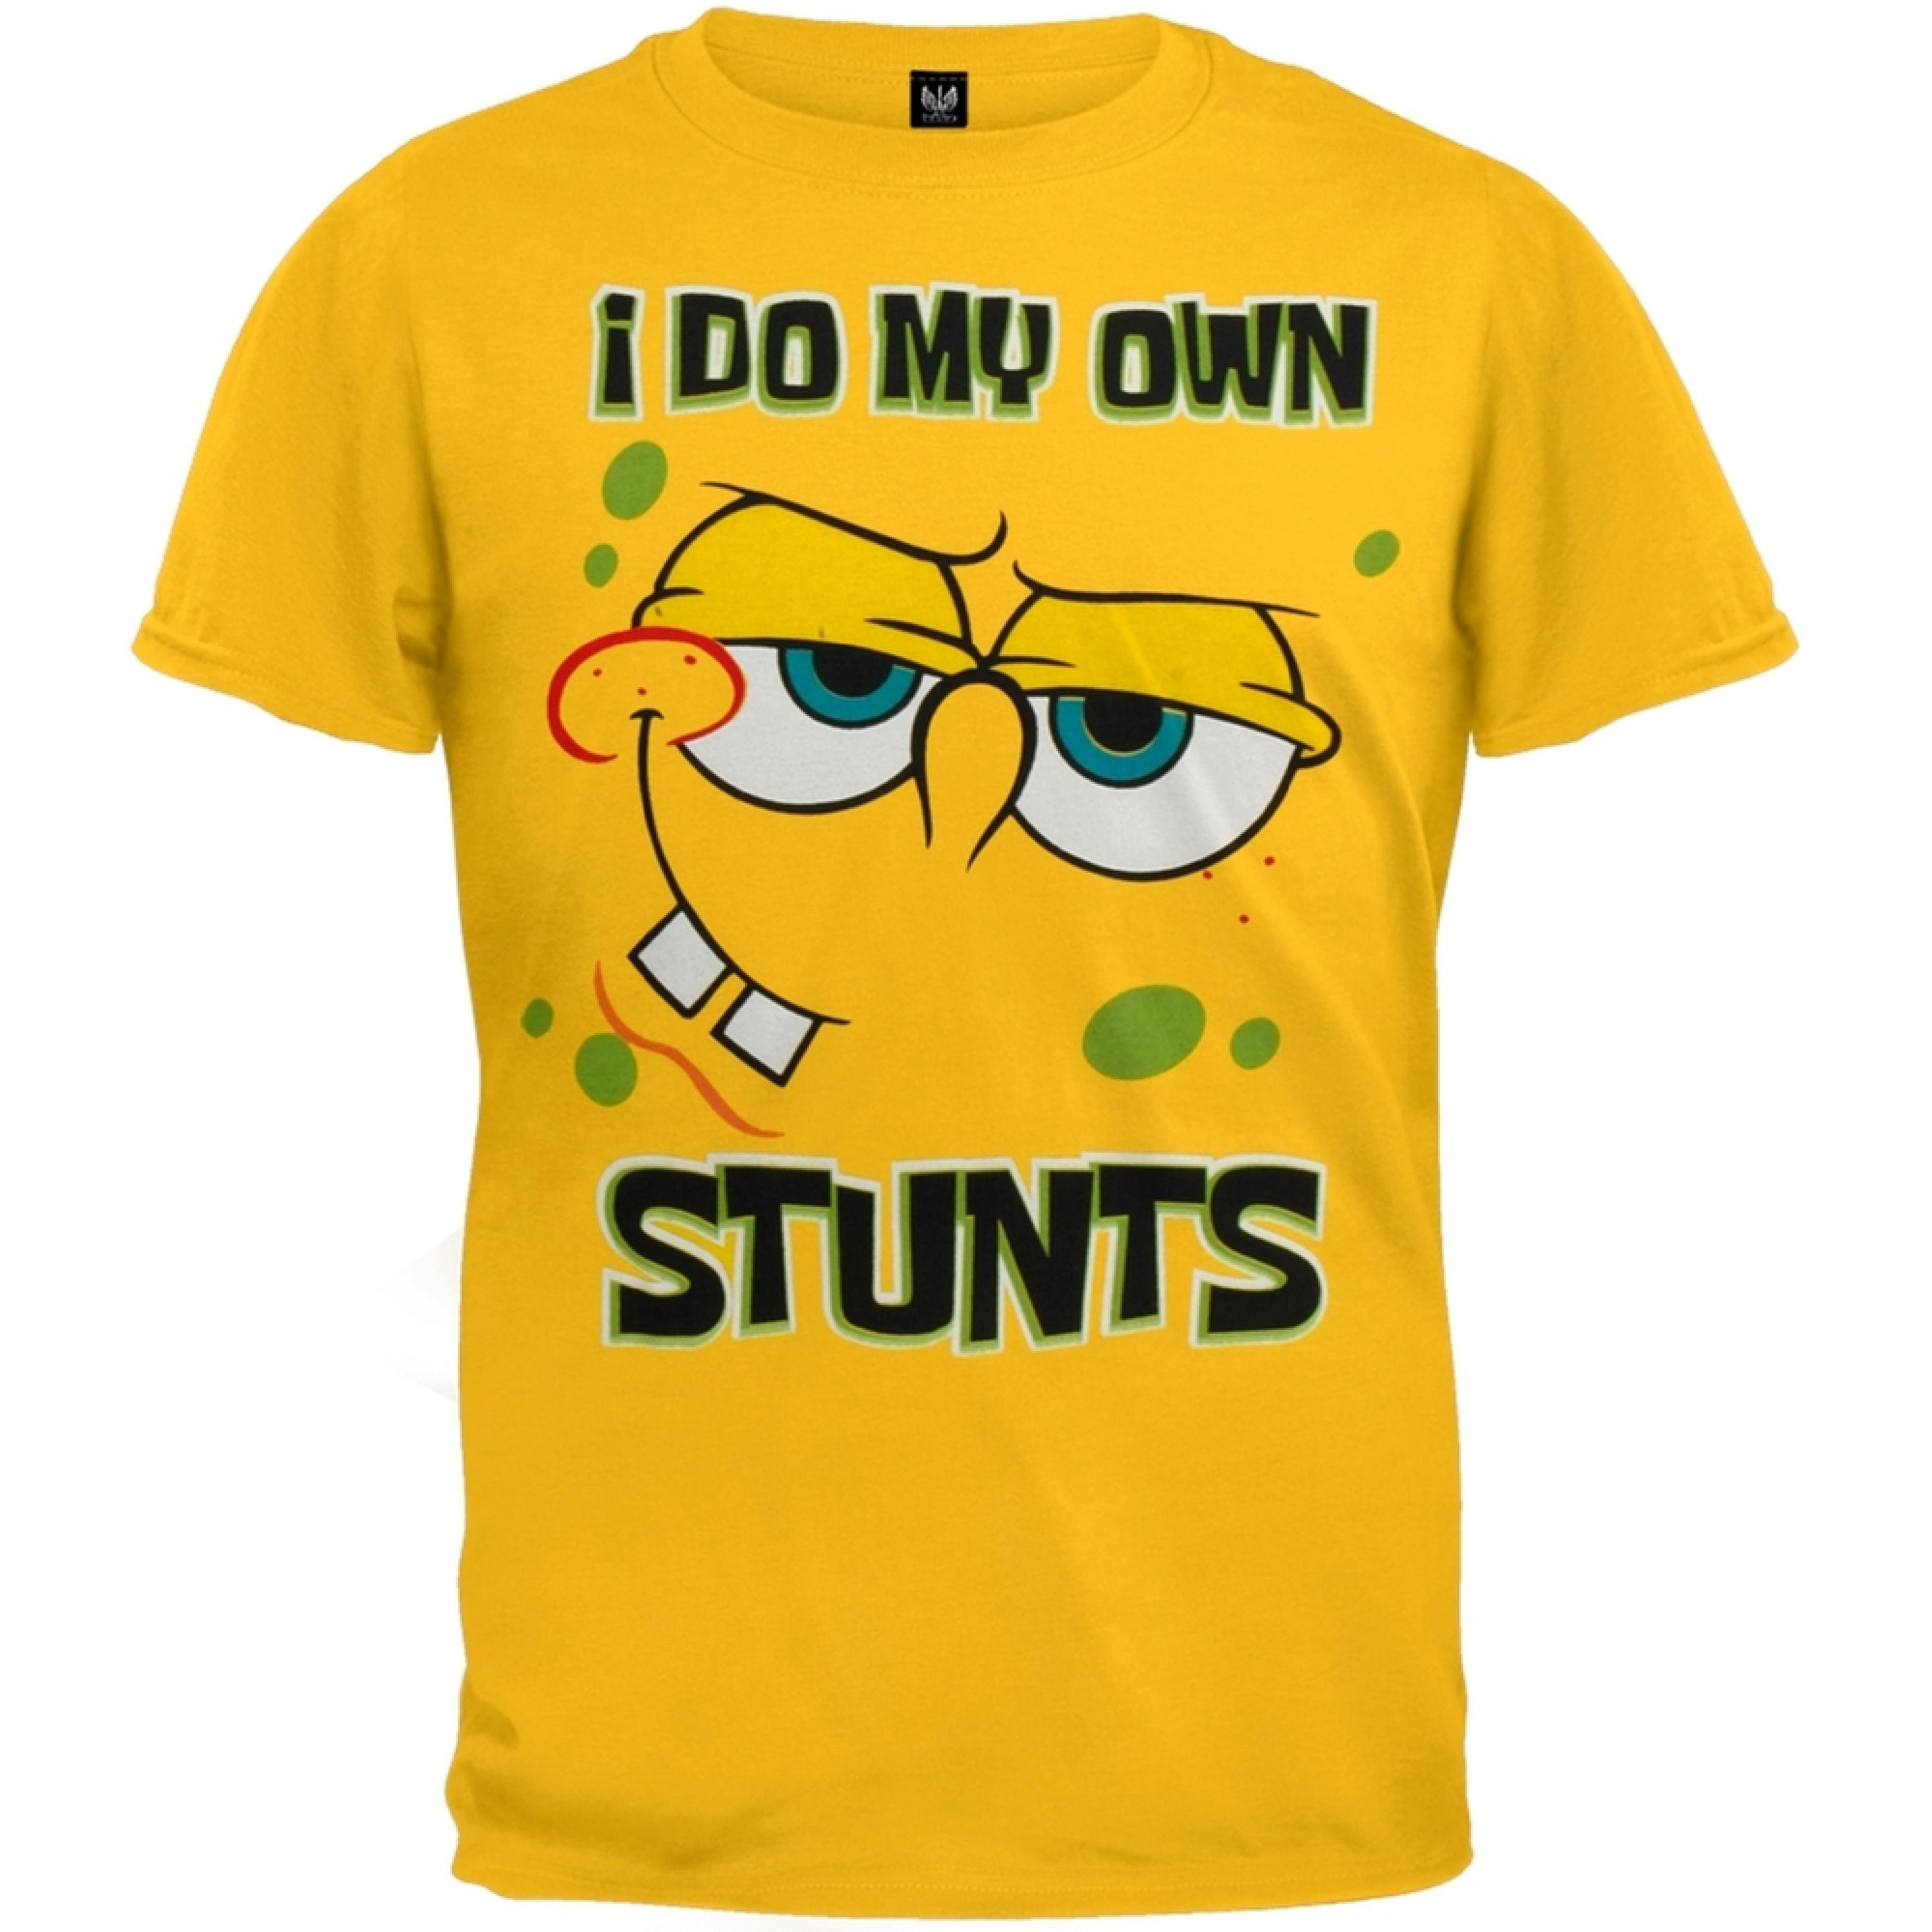 Spongebob Squarepants - I Do My Own Stunts Youth T-Shirt